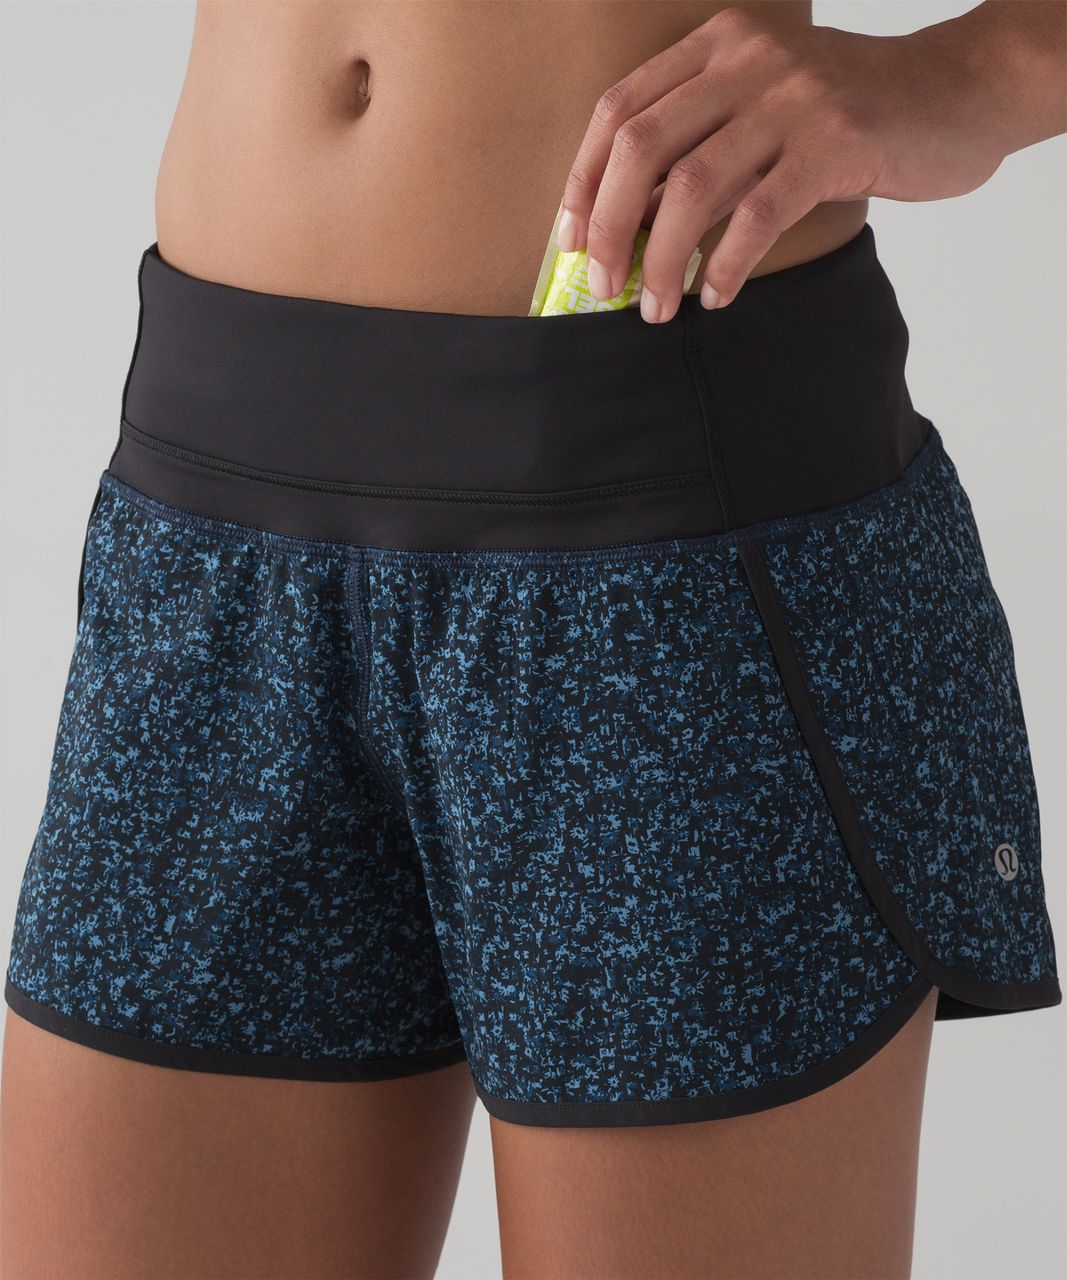 "Lululemon Run Times Short (4-way Stretch 4"" ) - Daisy Dust Illuminight Black / Black"